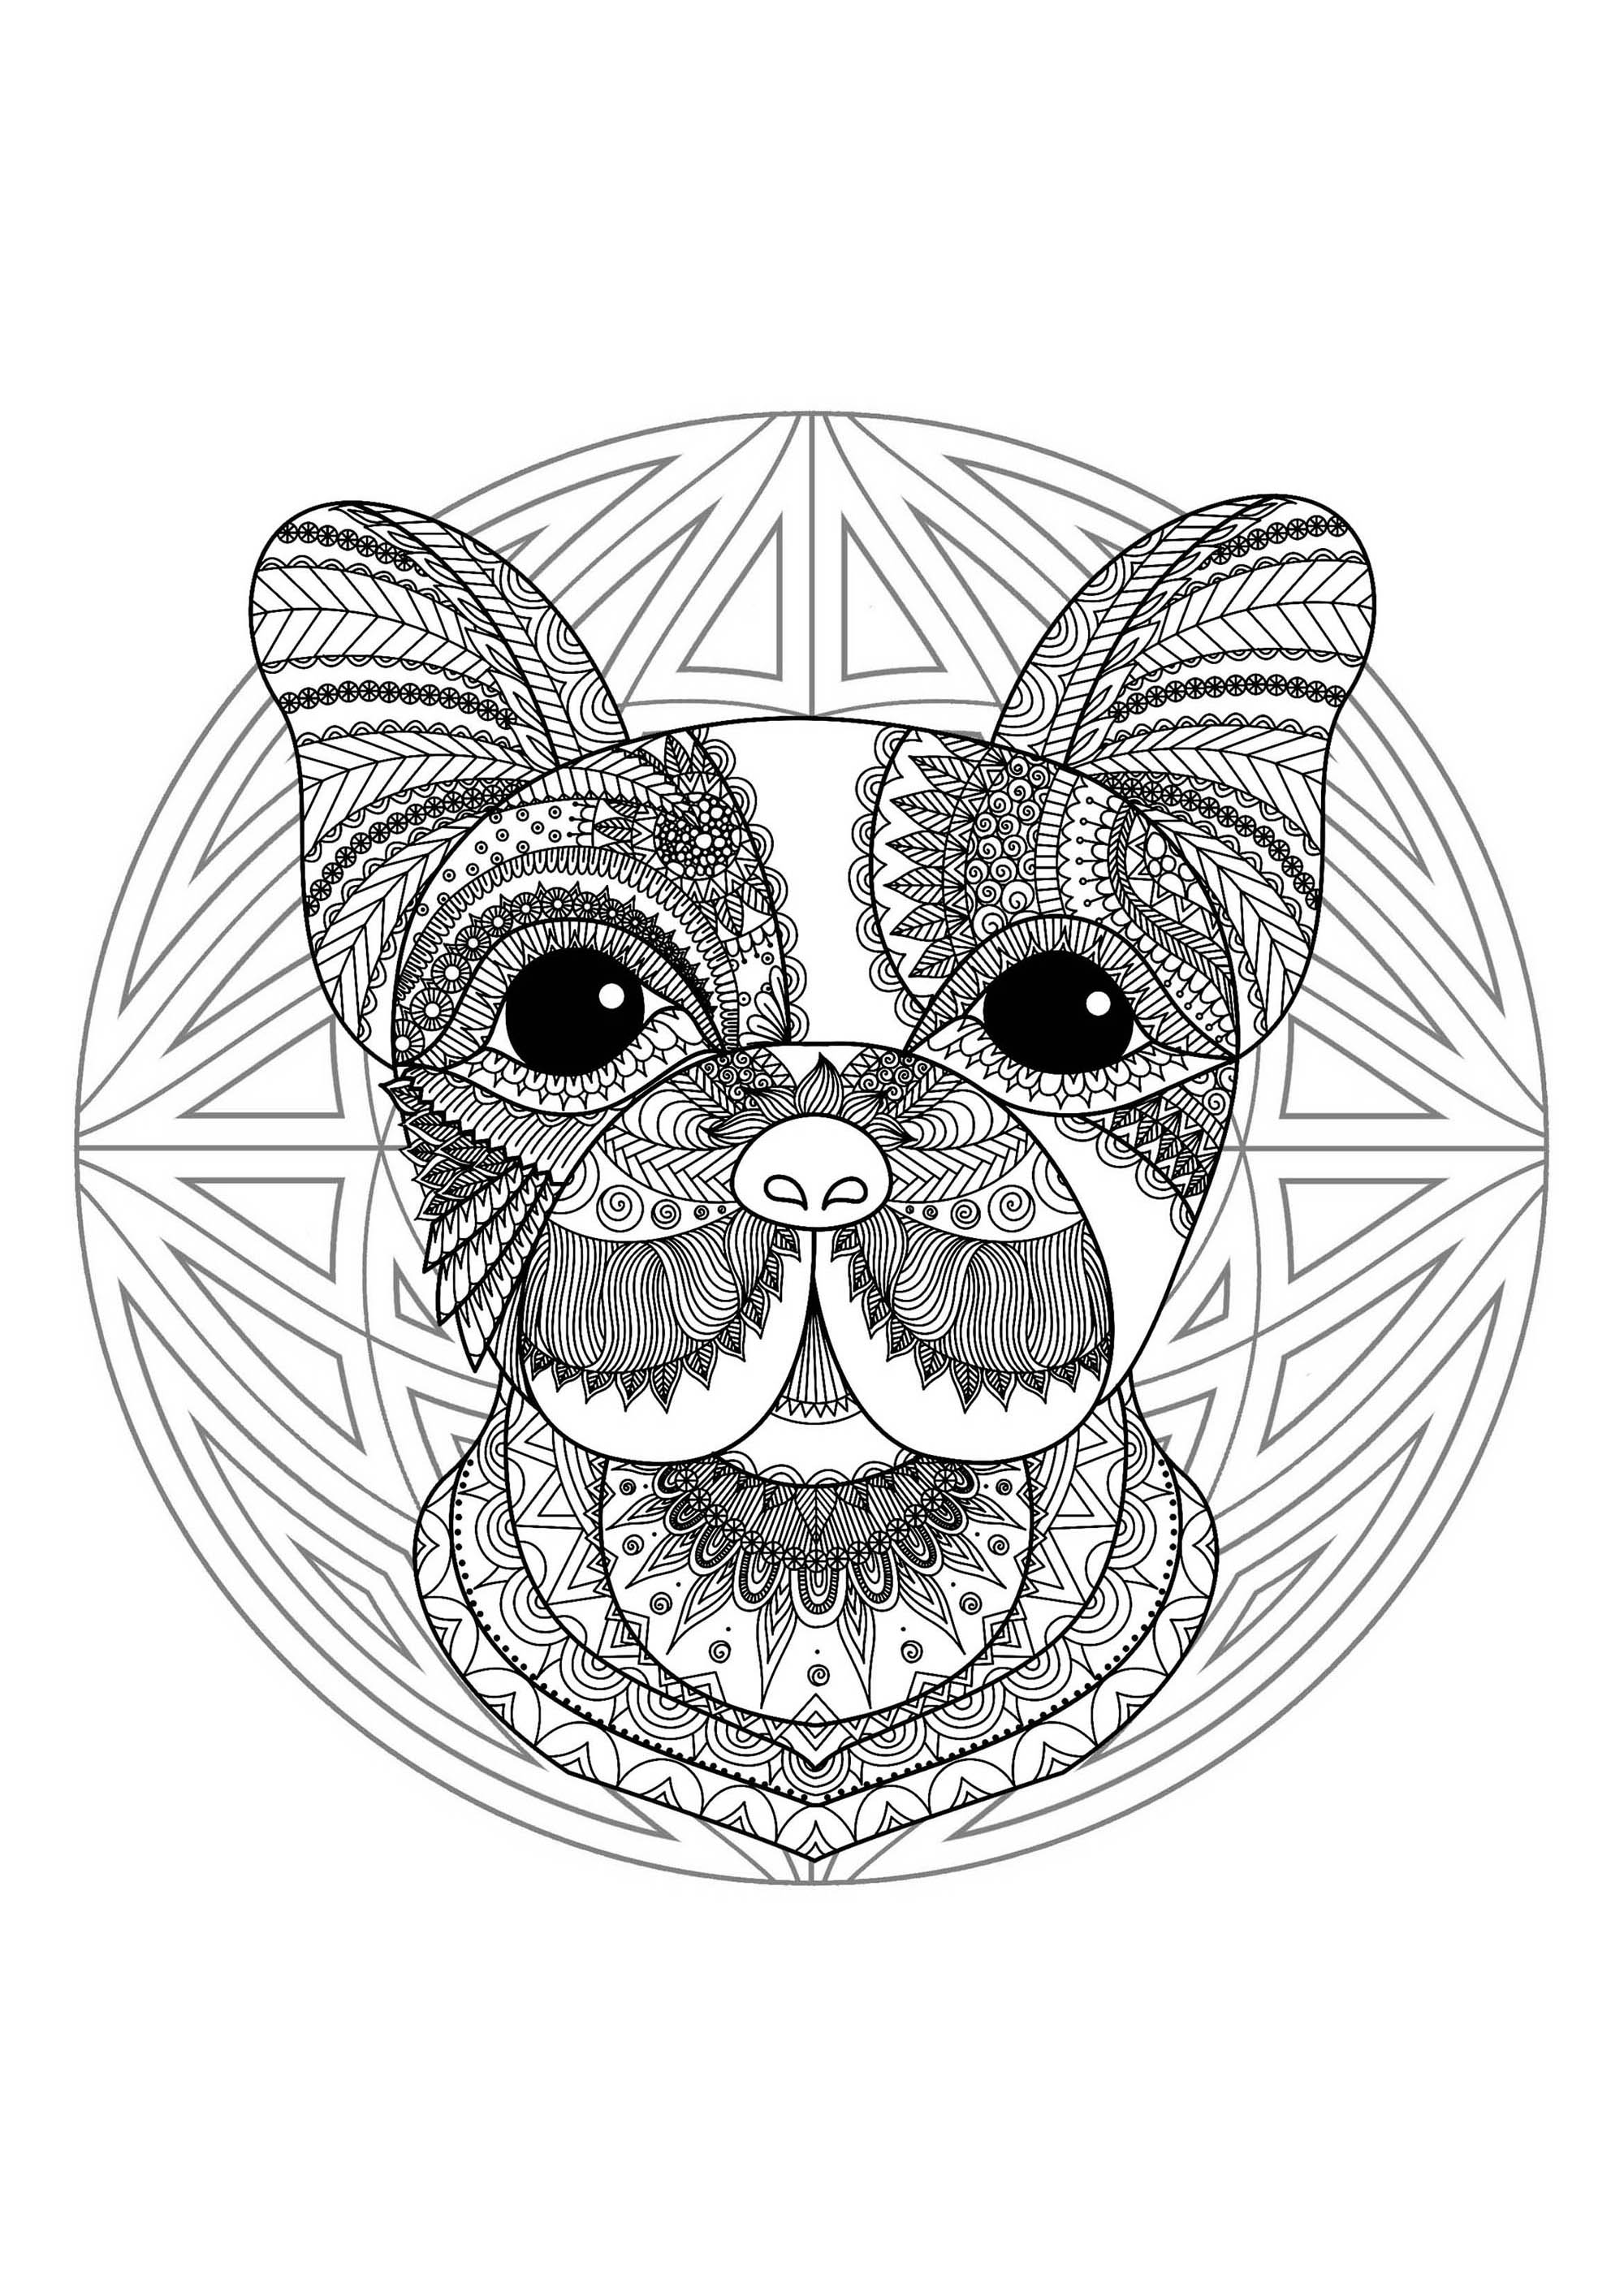 Coloring page with funny Dog head and beautiful Mandala in background